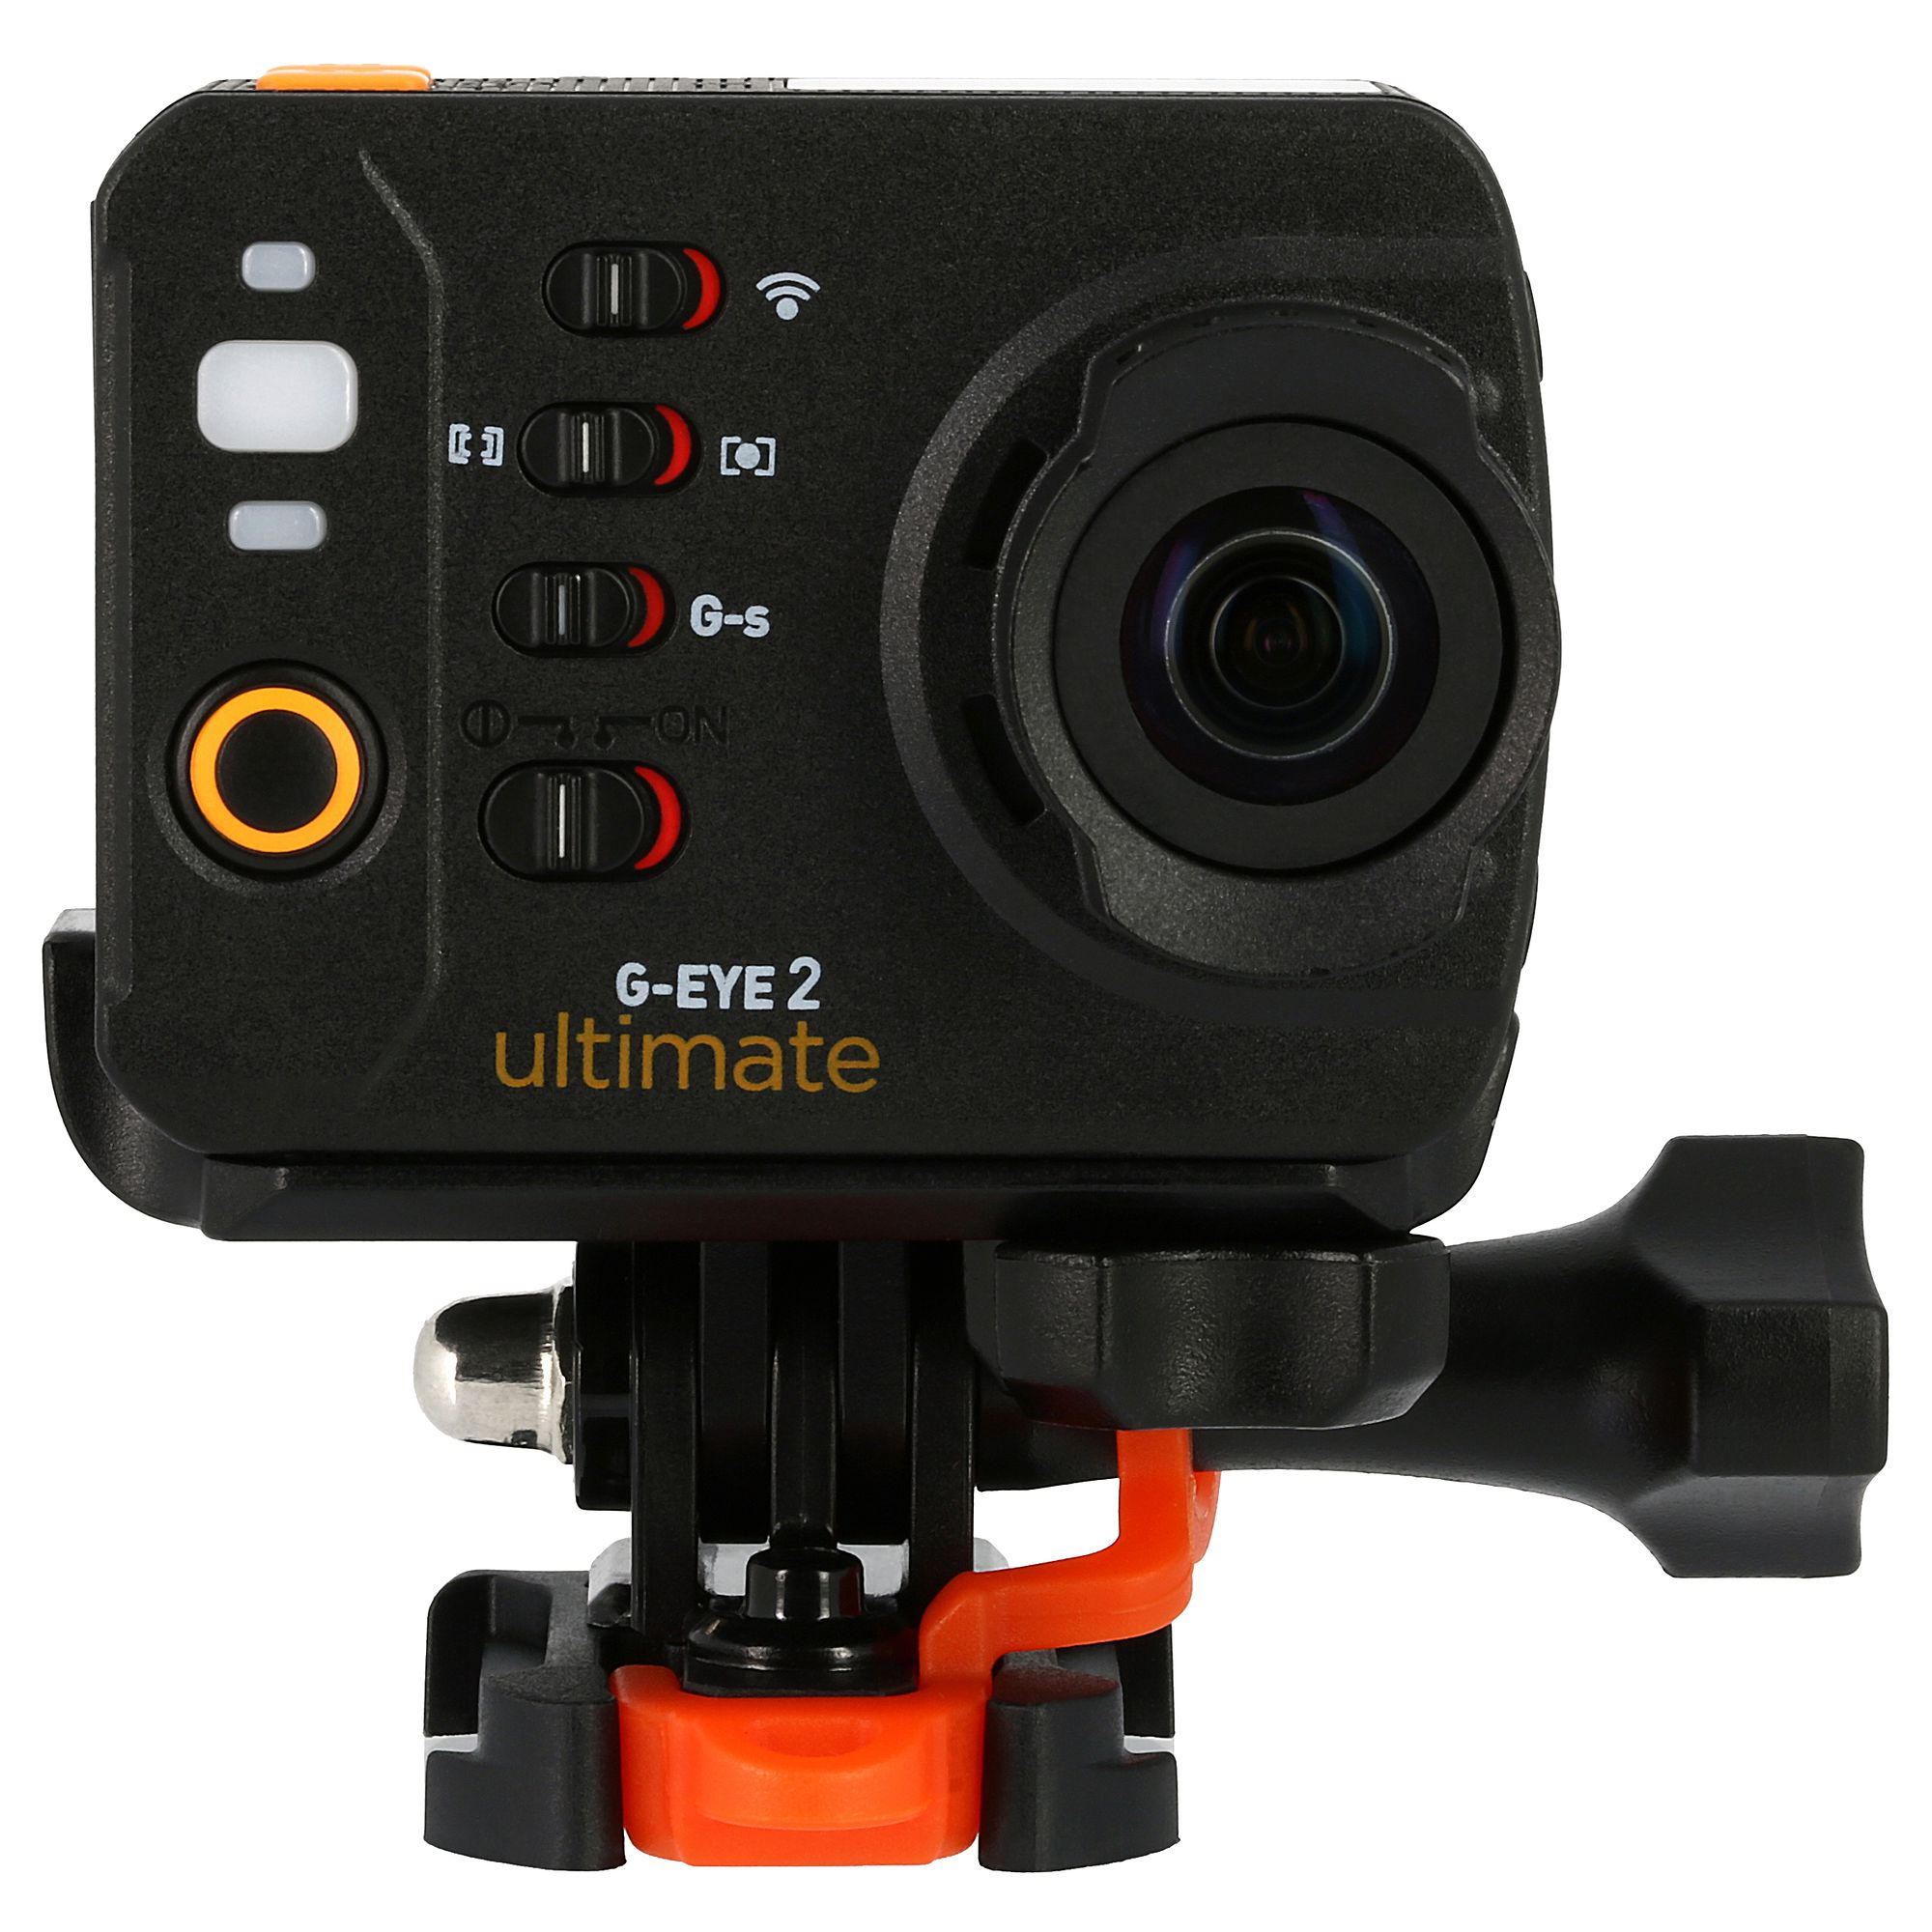 Caméra sportive G-EYE 2 ULTIMATE FULL HD (1080p / 60 FPS)